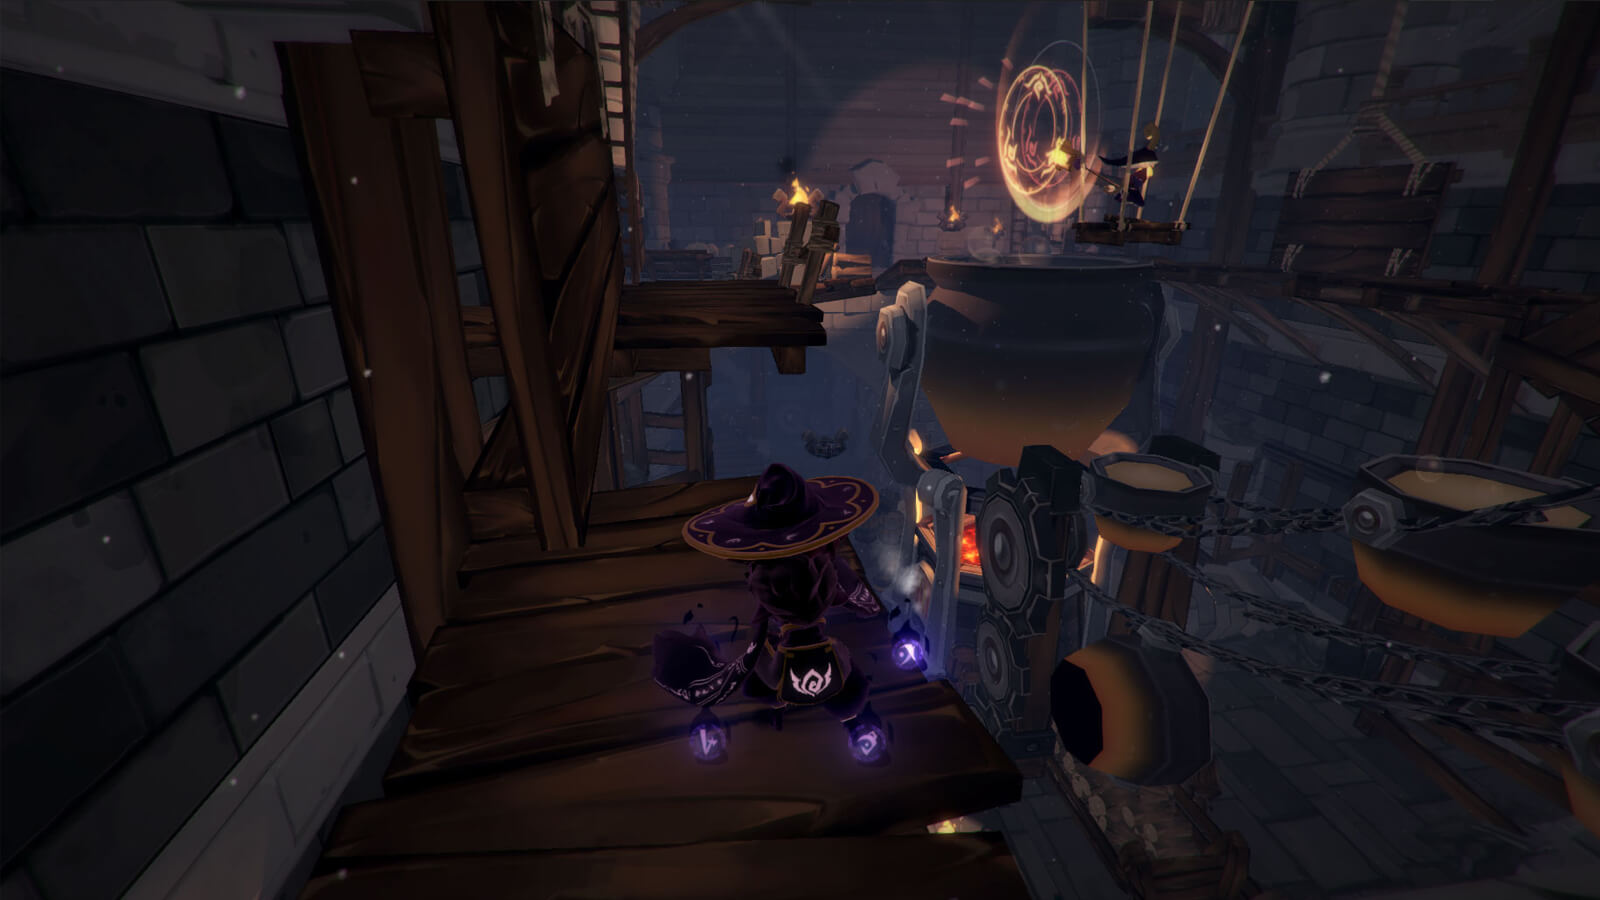 View of the player's character from behind standing in a darkened industrial area with an orange portal in the distance